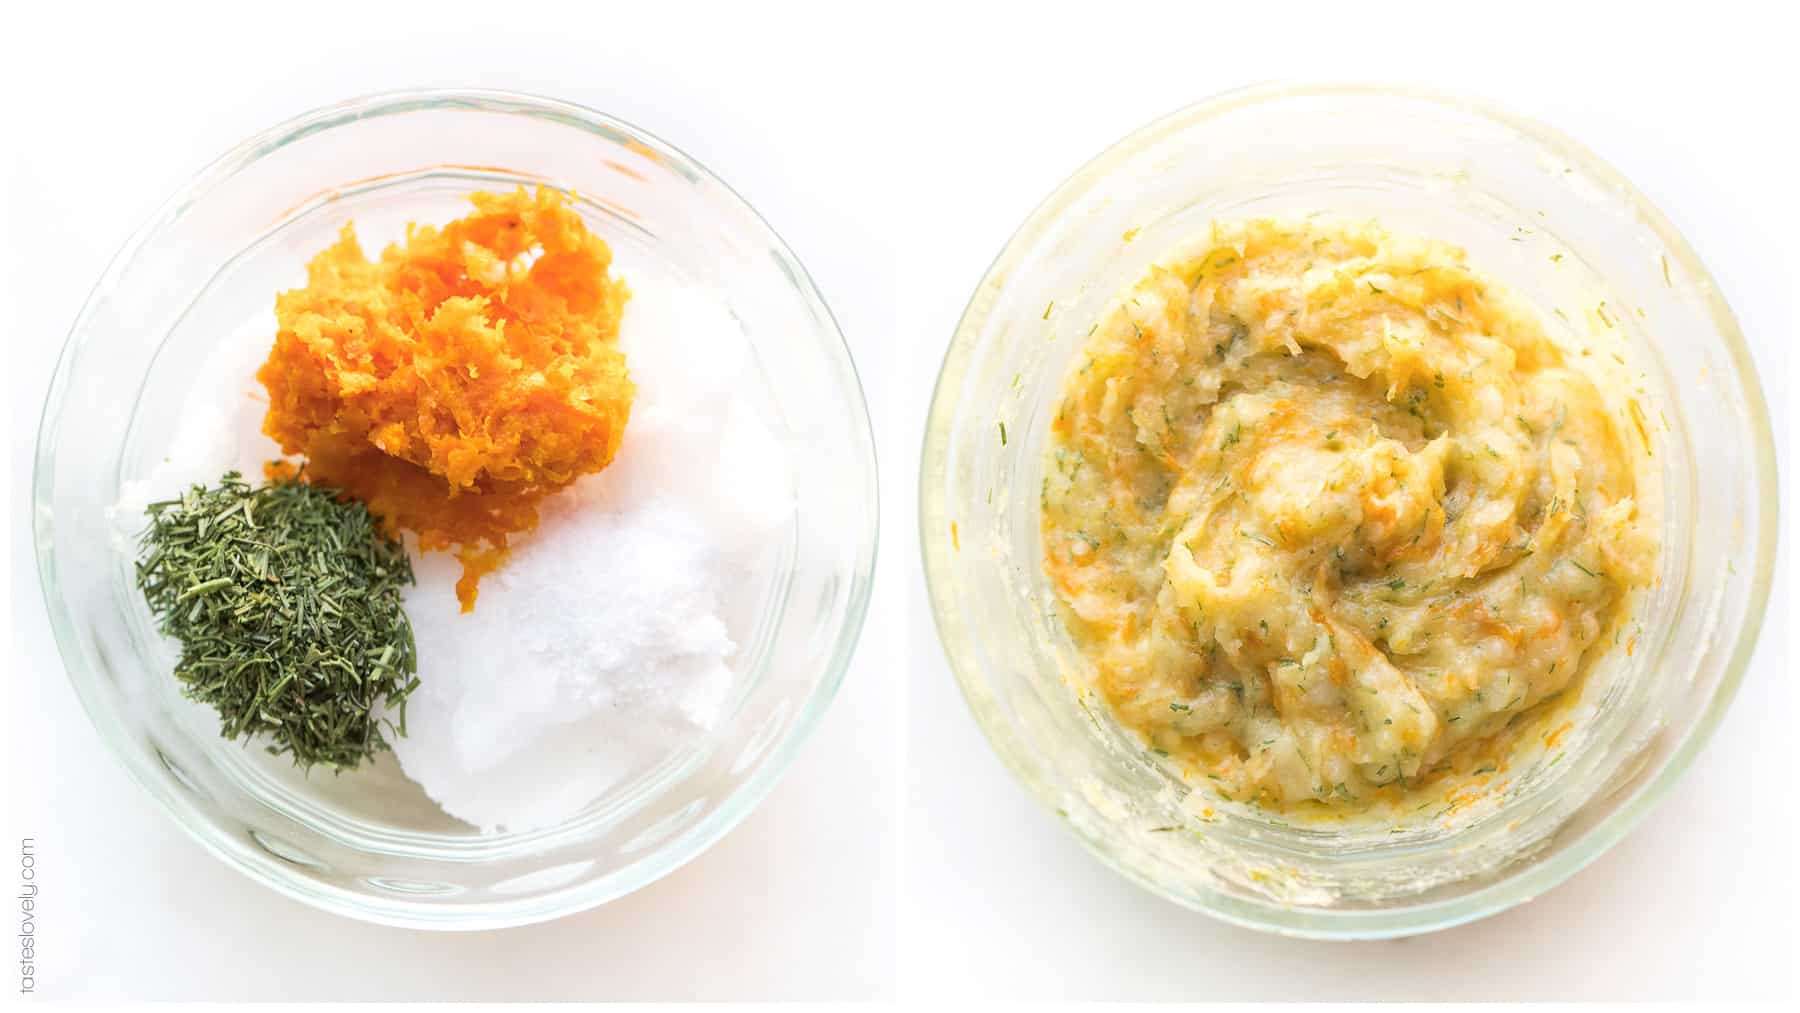 Coconut oil with orange zest and dill